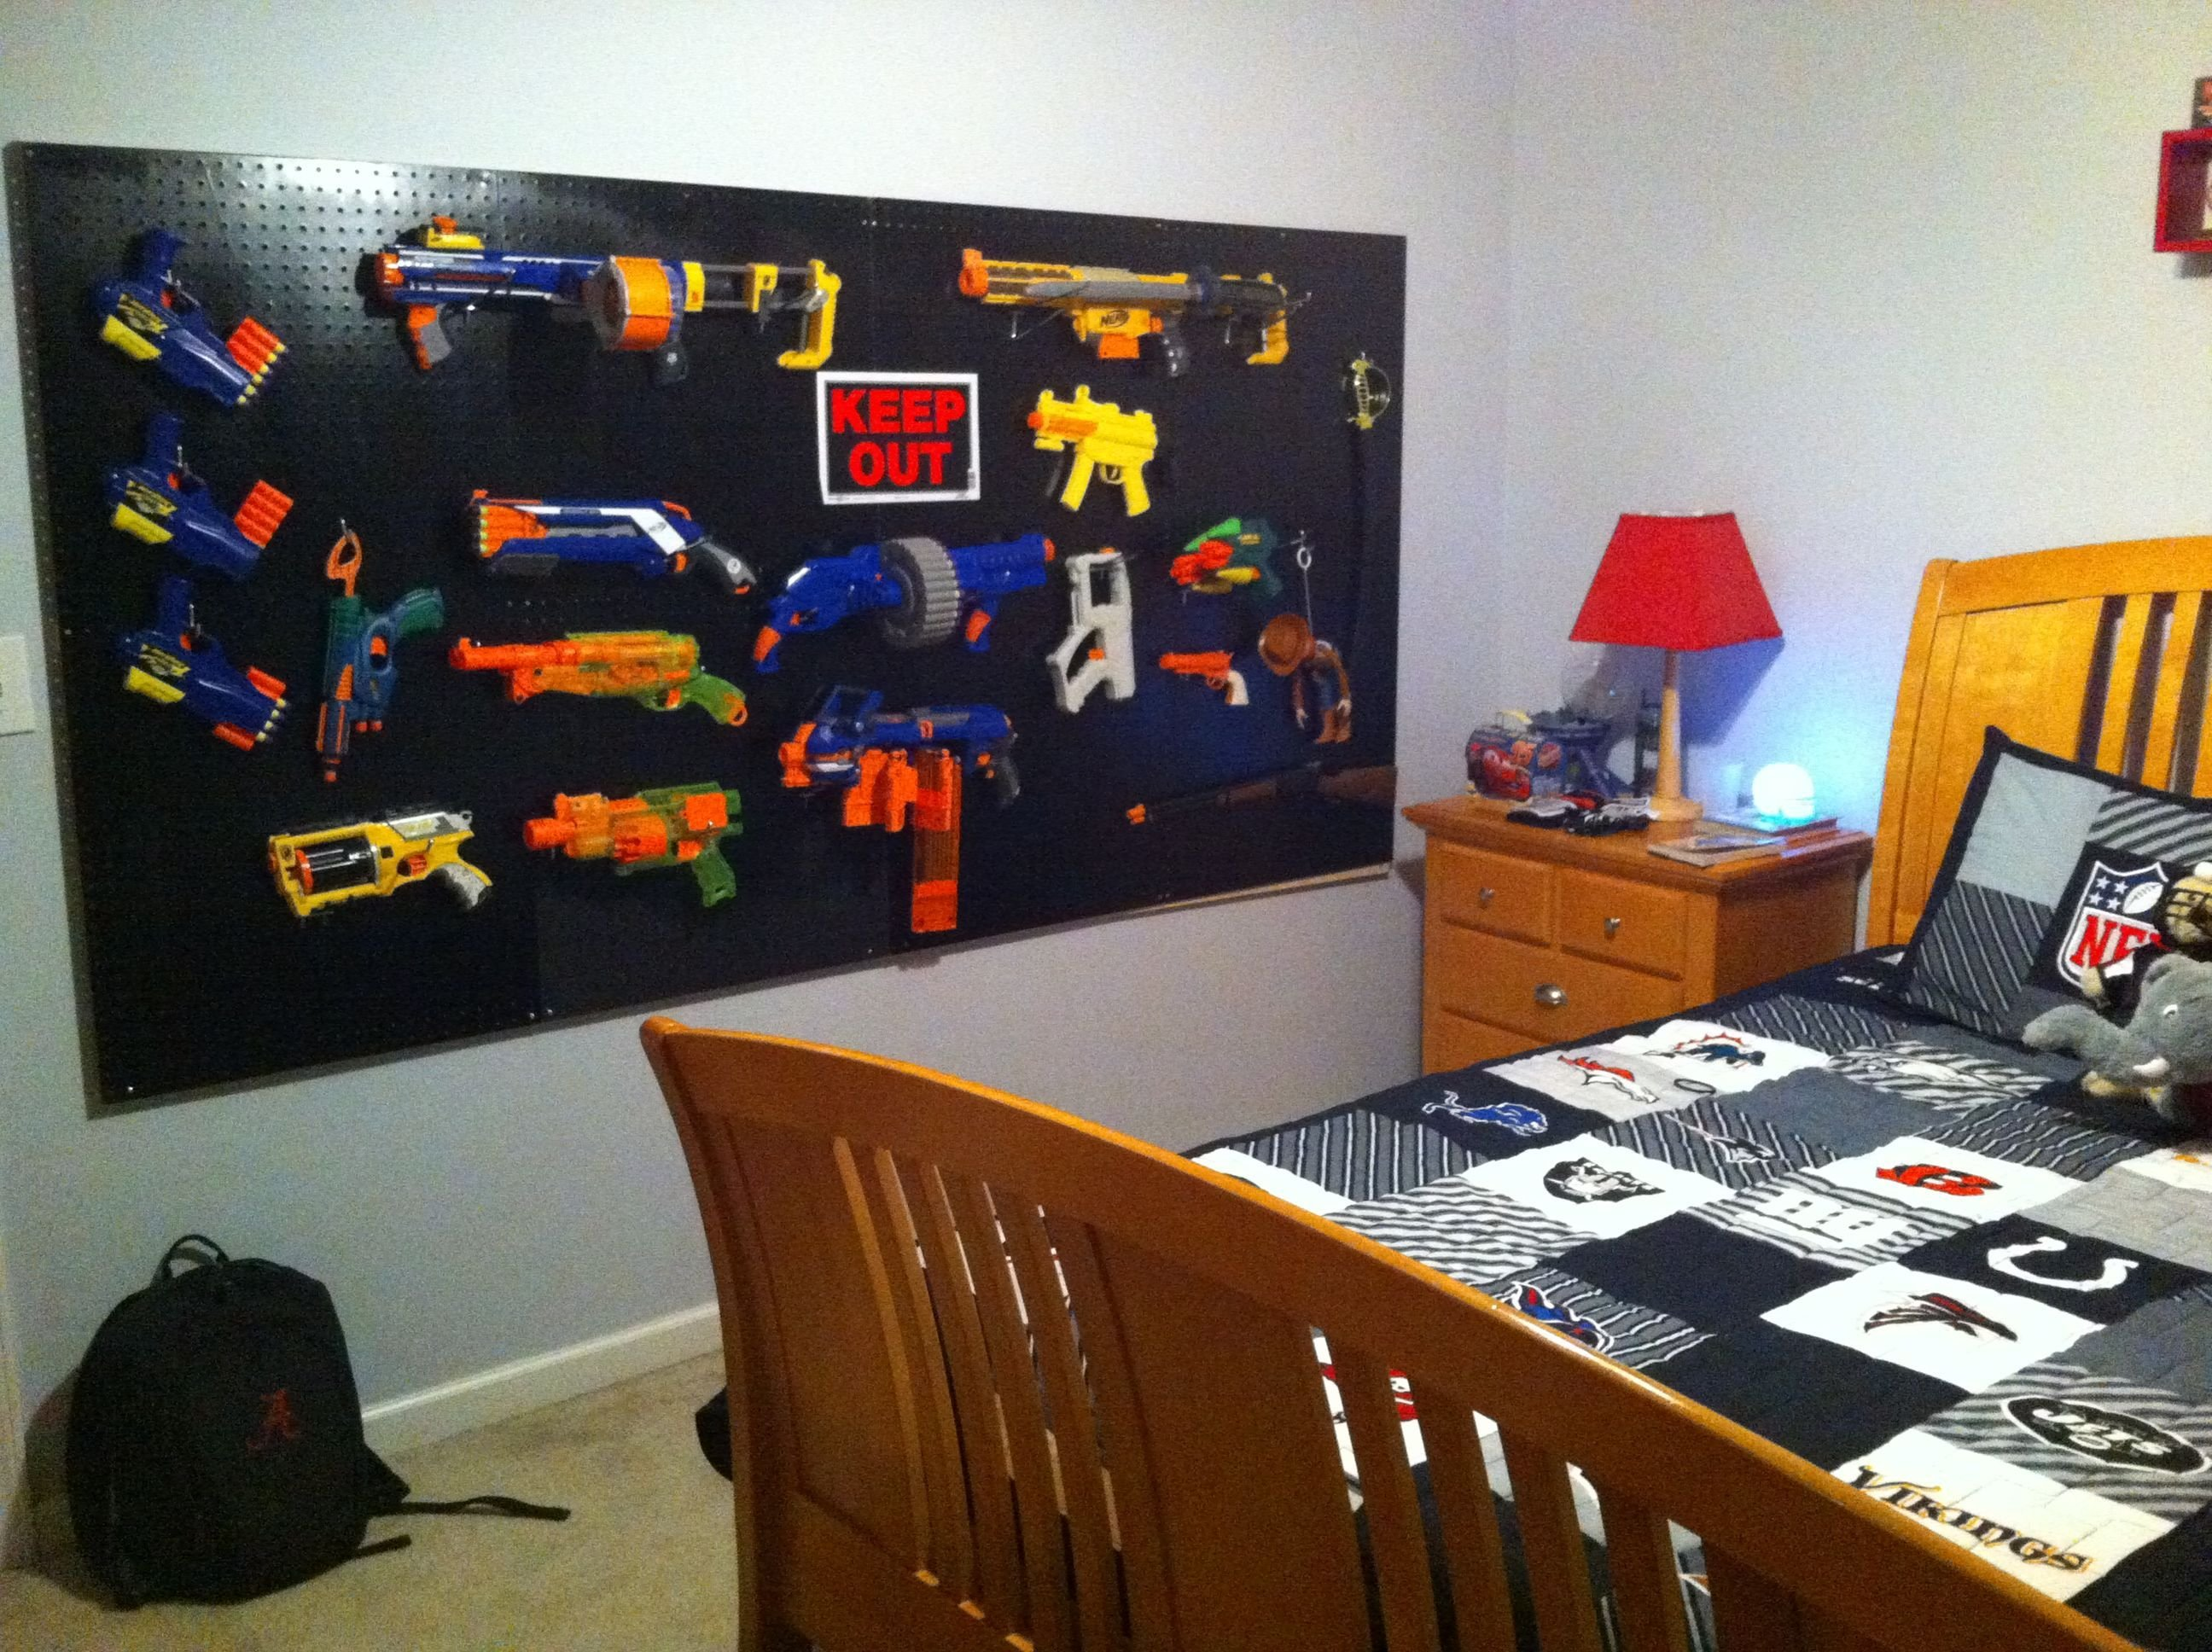 Best Nerf Gun Storage I Like How It Looks Clean And Organized With Pictures